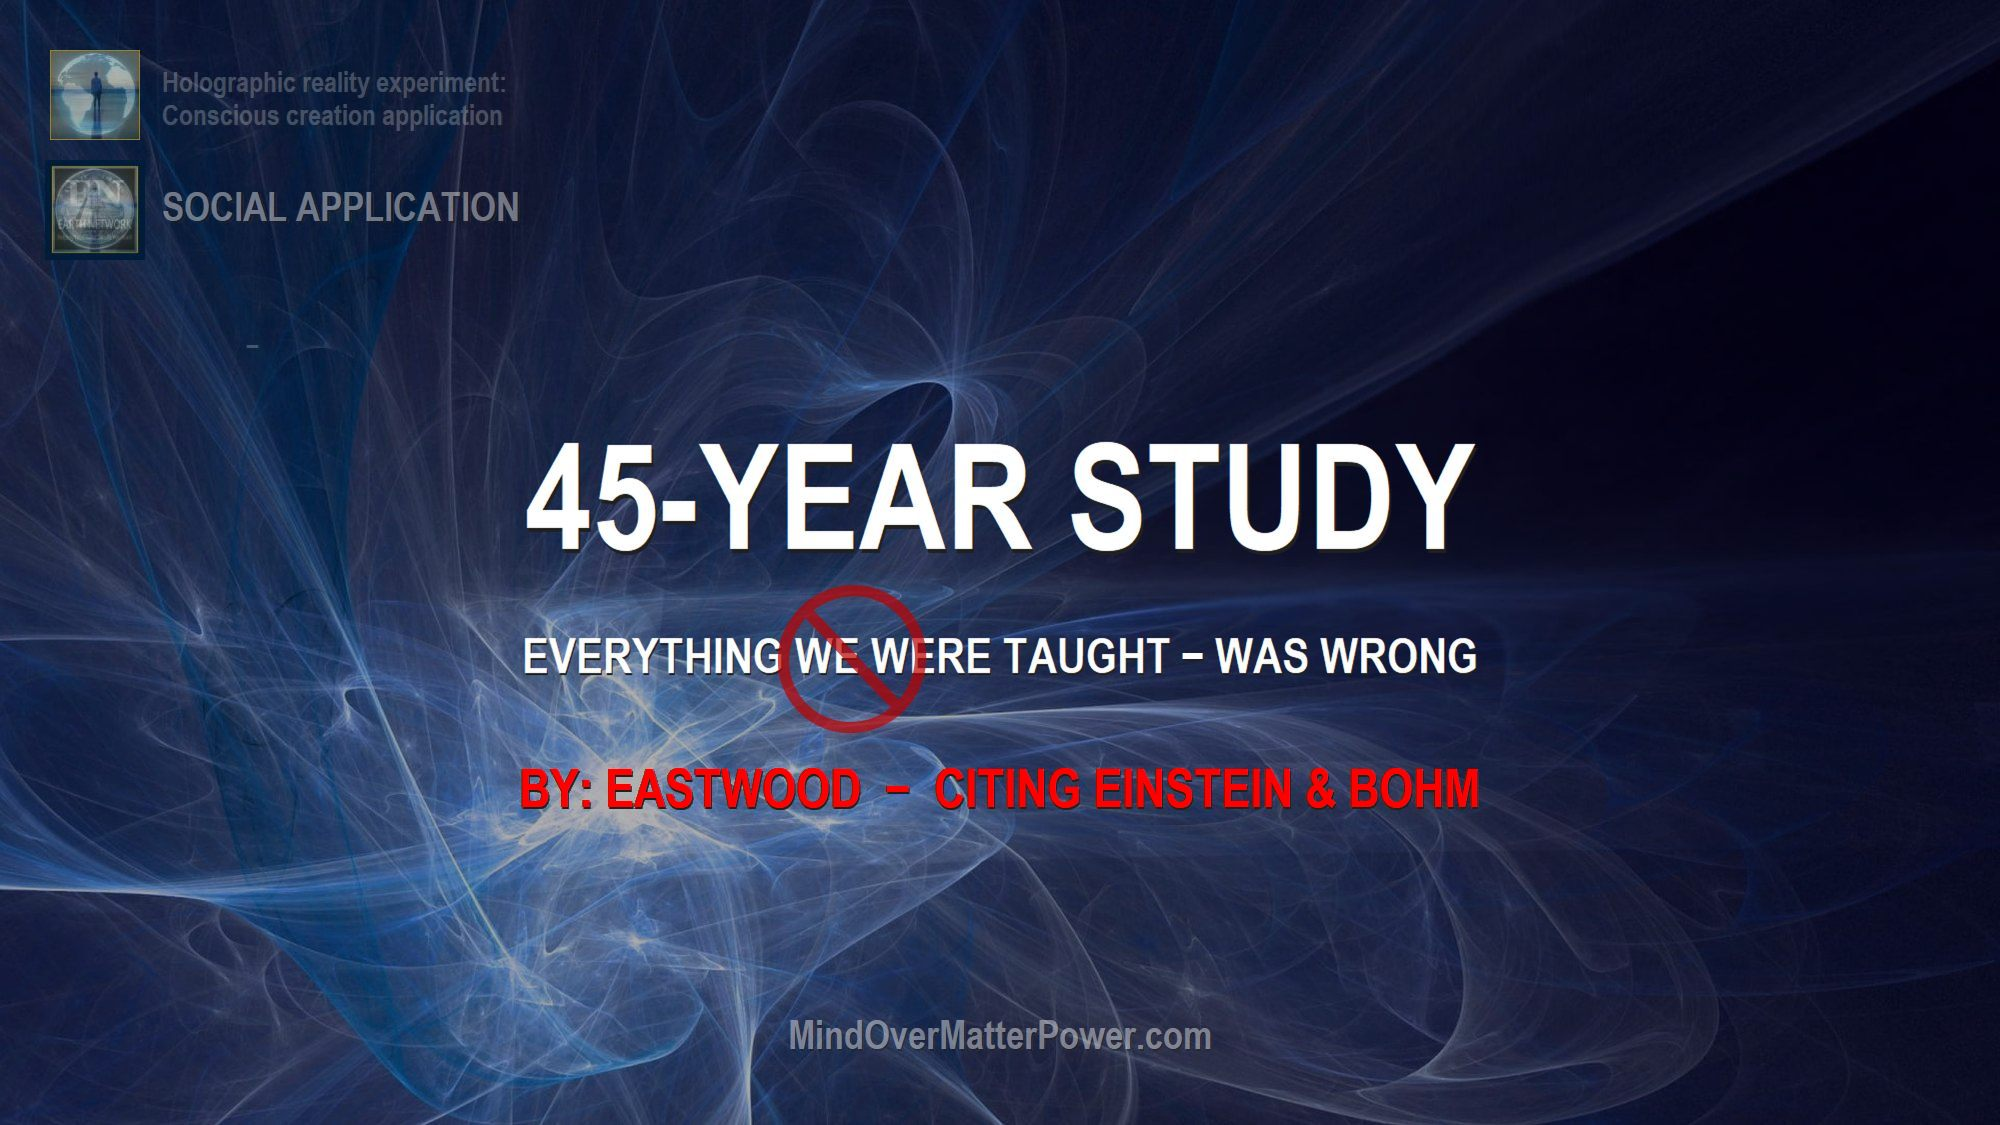 a-lifetime-study-the-application-of-metaphysical-principles-for-over-45-years-feature-design